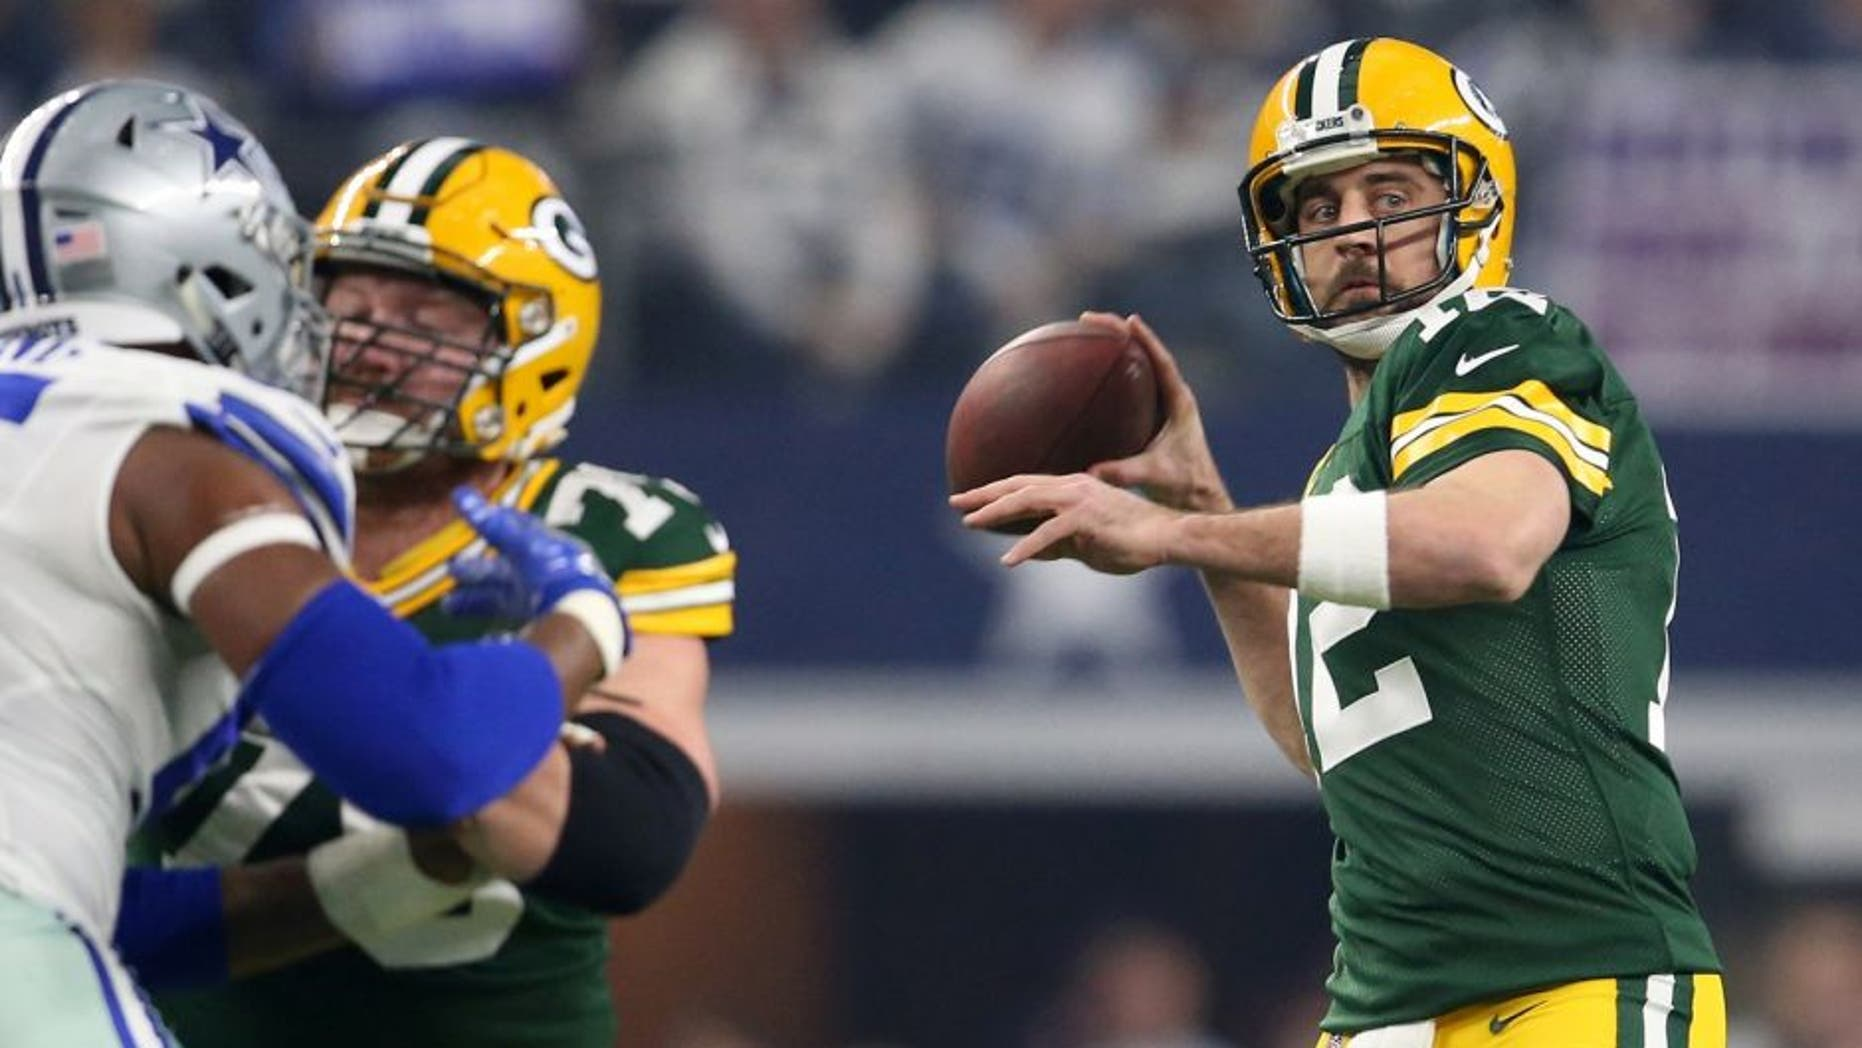 Jan 15, 2017; Arlington, TX, USA; Green Bay Packers quarterback Aaron Rodgers (12) throws a pass against the Dallas Cowboys during the first quarter in the NFC Divisional playoff game at AT&T Stadium. Mandatory Credit: Matthew Emmons-USA TODAY Sports